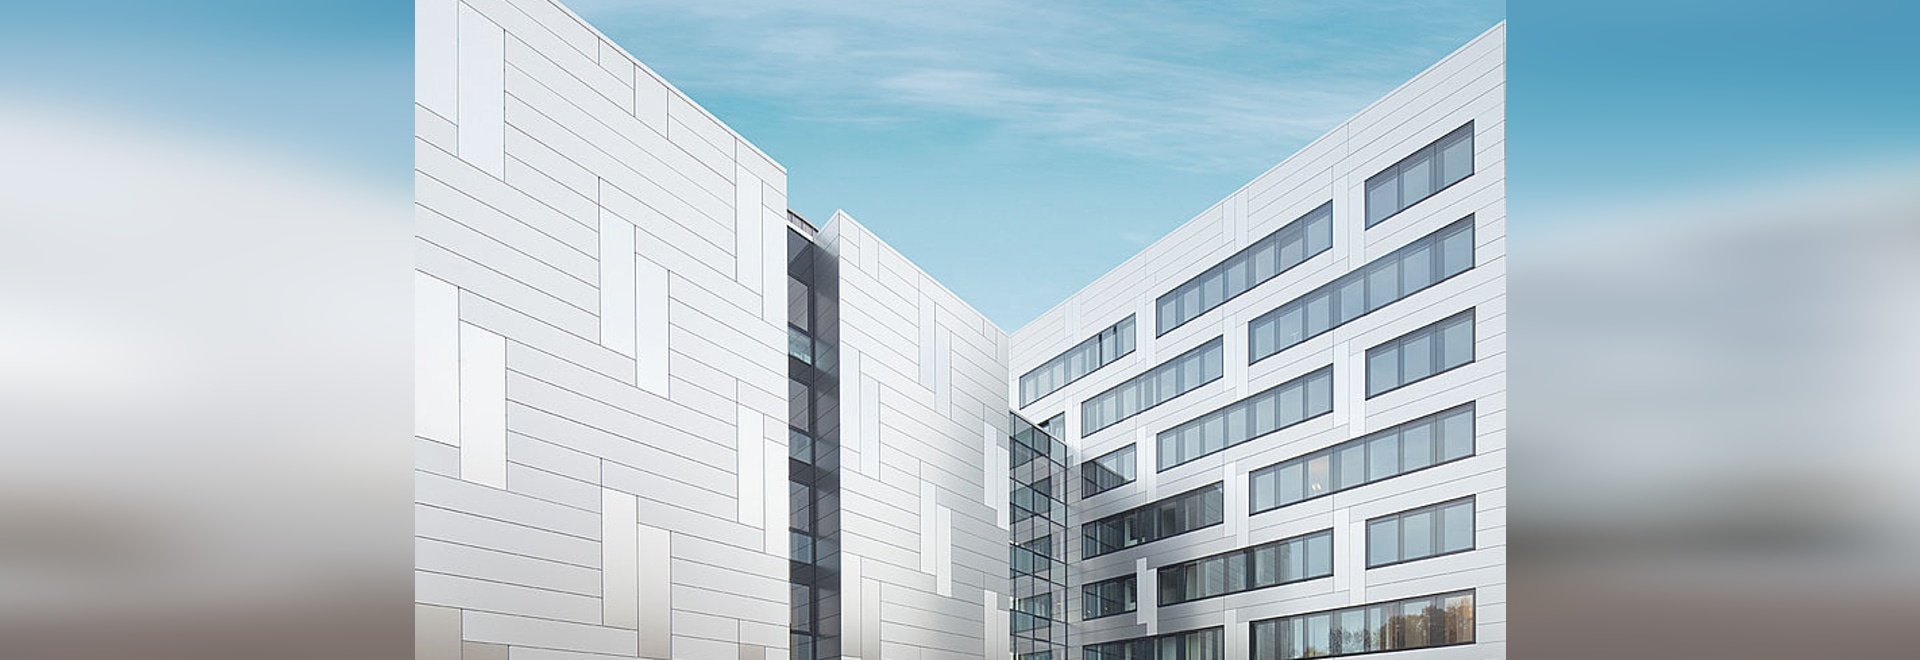 Pensionskasse Hoechst - Homogenous facade with iridescent effects with Reynobond aluminium composite panels